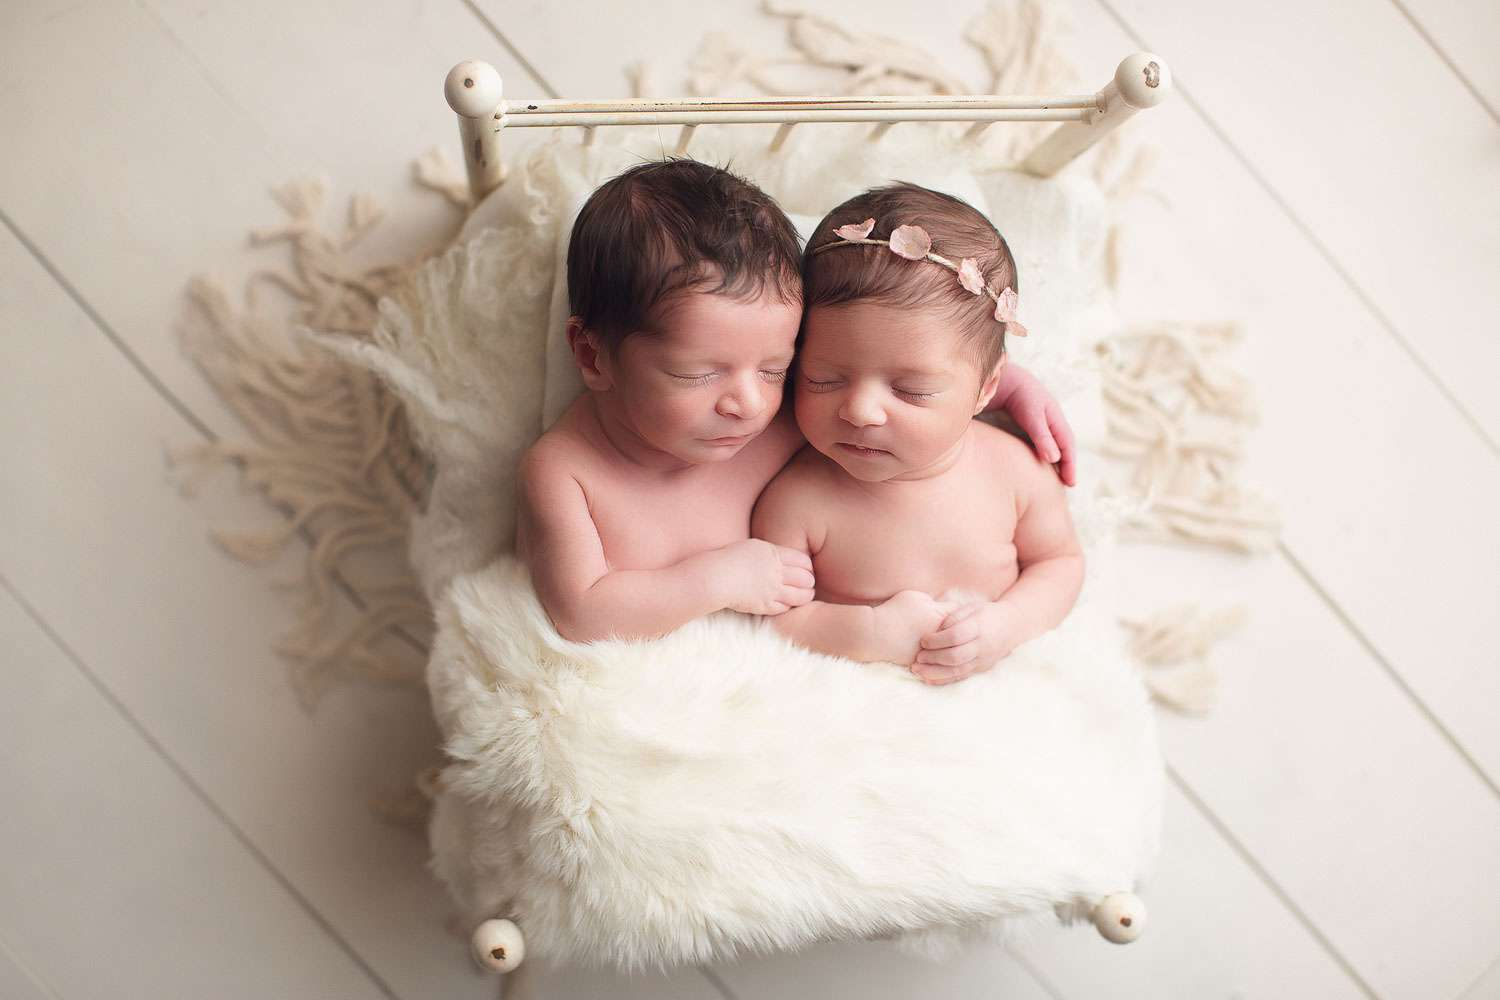 twins newborn siblings boy and girl sleeping in a white bed | Jana photography | vancouver